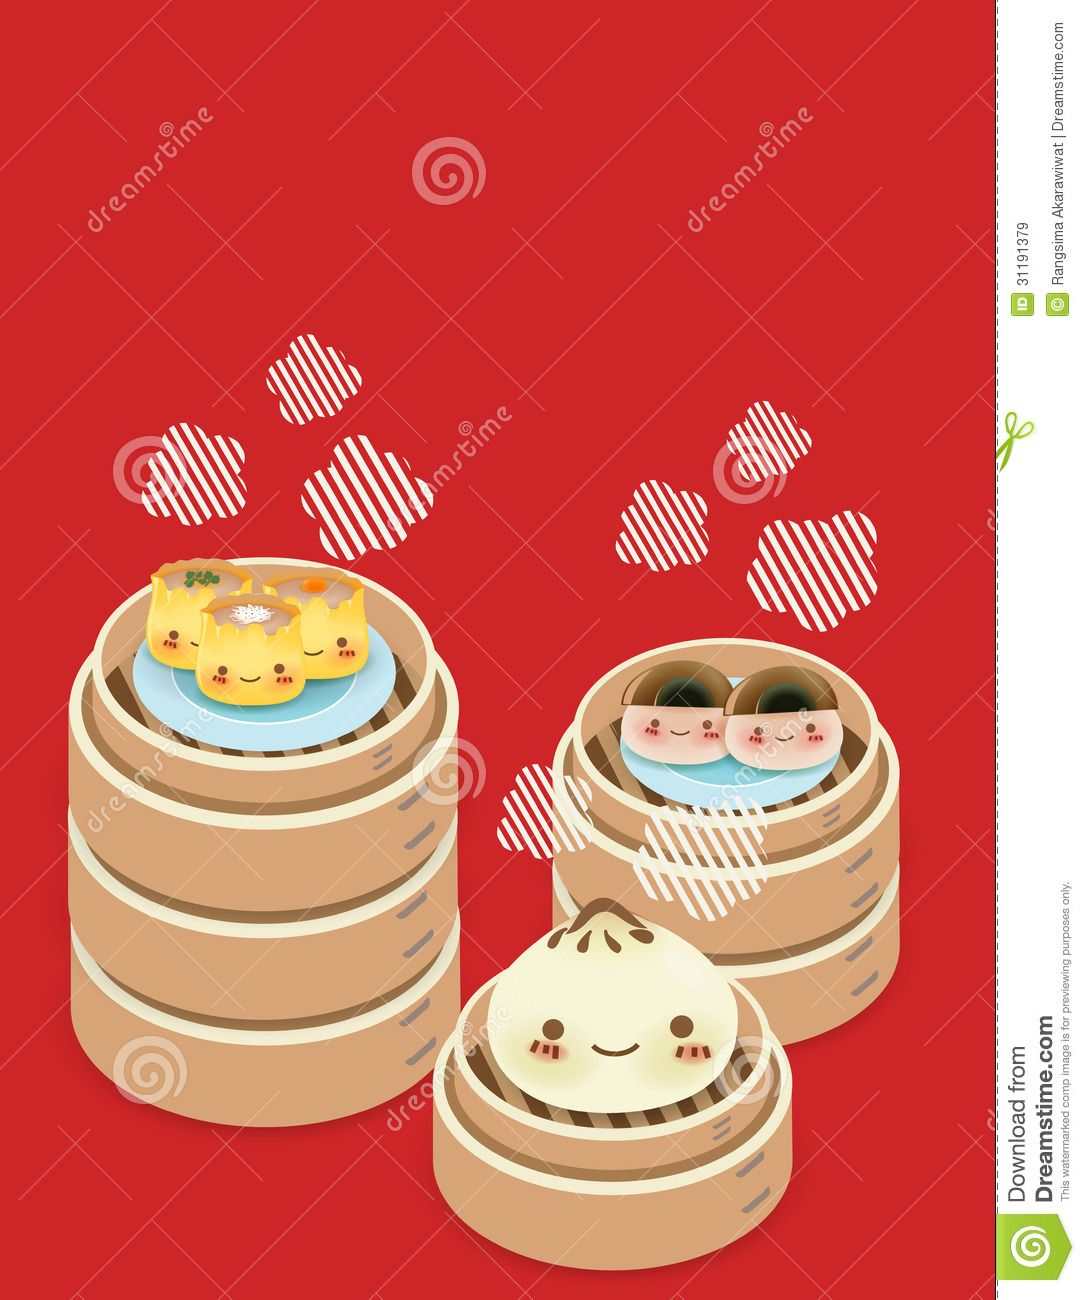 cute dim sum royalty free stock images image 31191379 dim sum cute food drawings chinese food cute dim sum royalty free stock images